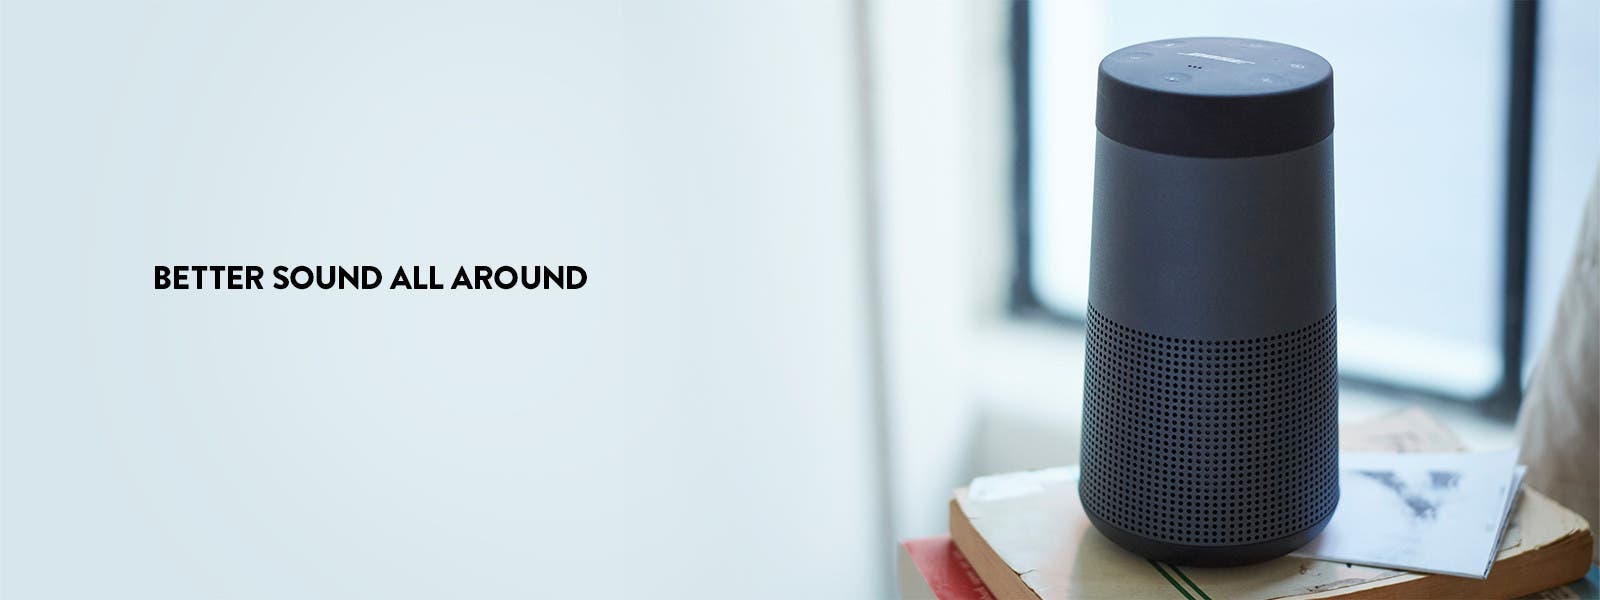 Better sound all around: Bose SoundLink Revolve Bluetooth speaker.